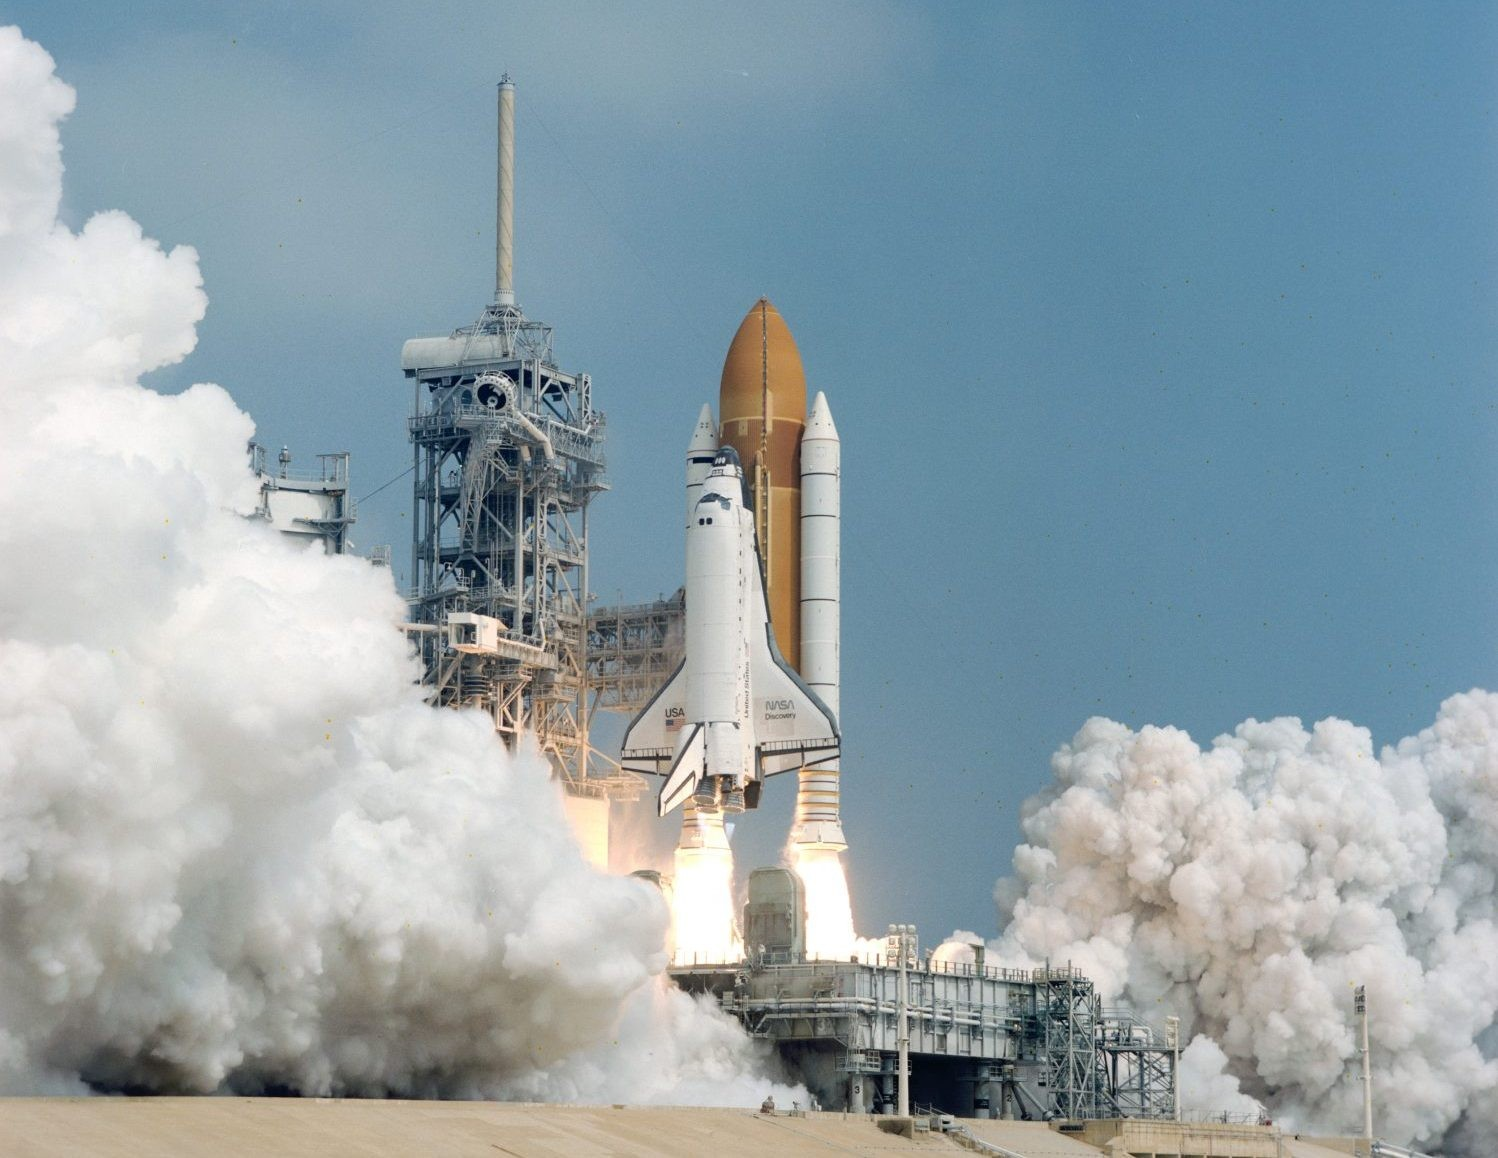 Space Shuttle Discovery launches from NASA Kennedy Space Center, 7 August 1997. Credit: NASA